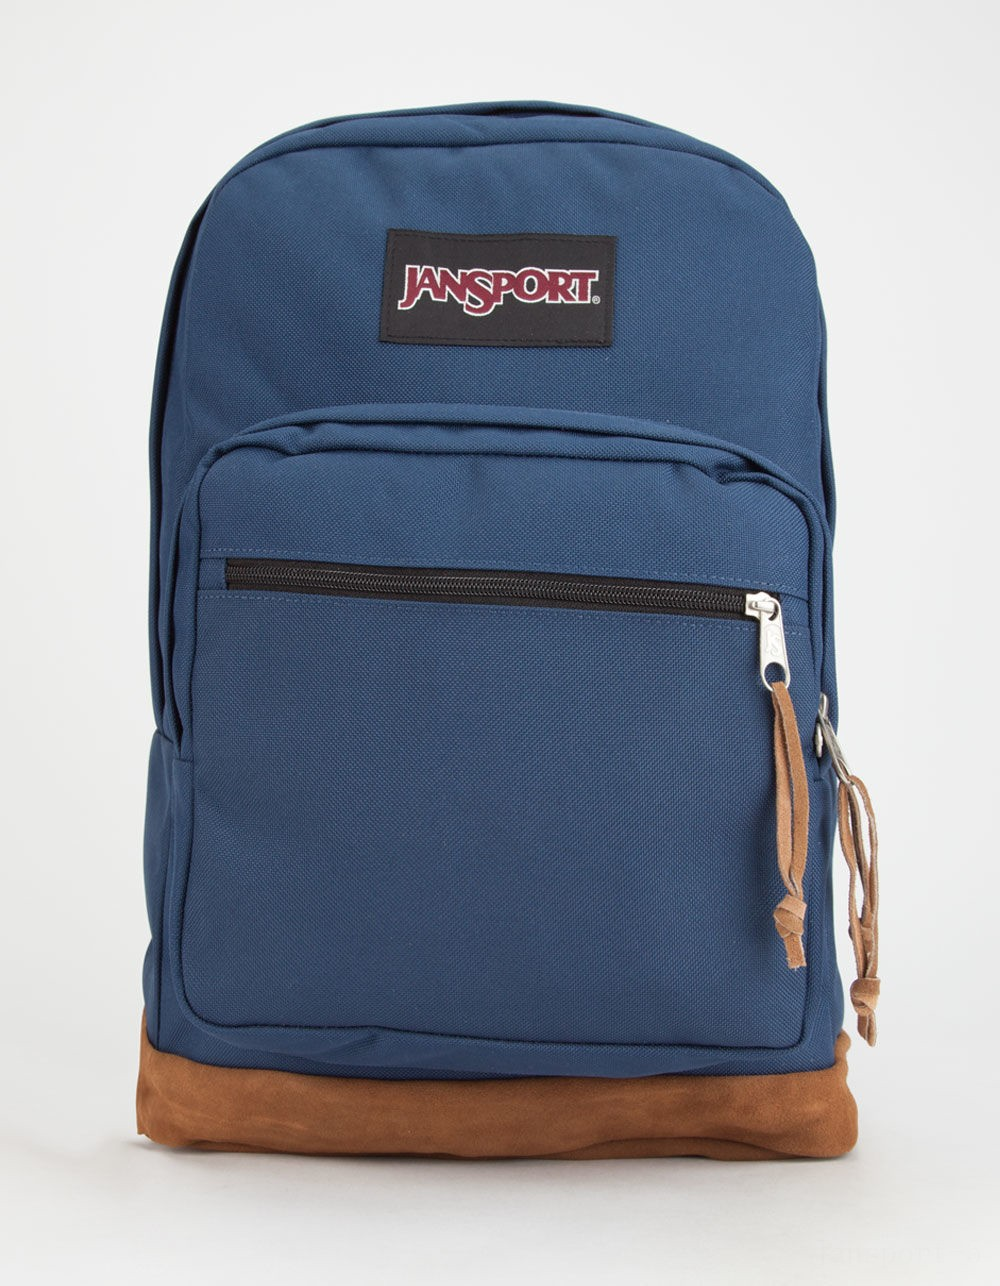 limited sale jansport right pack backpack navy last chance best price